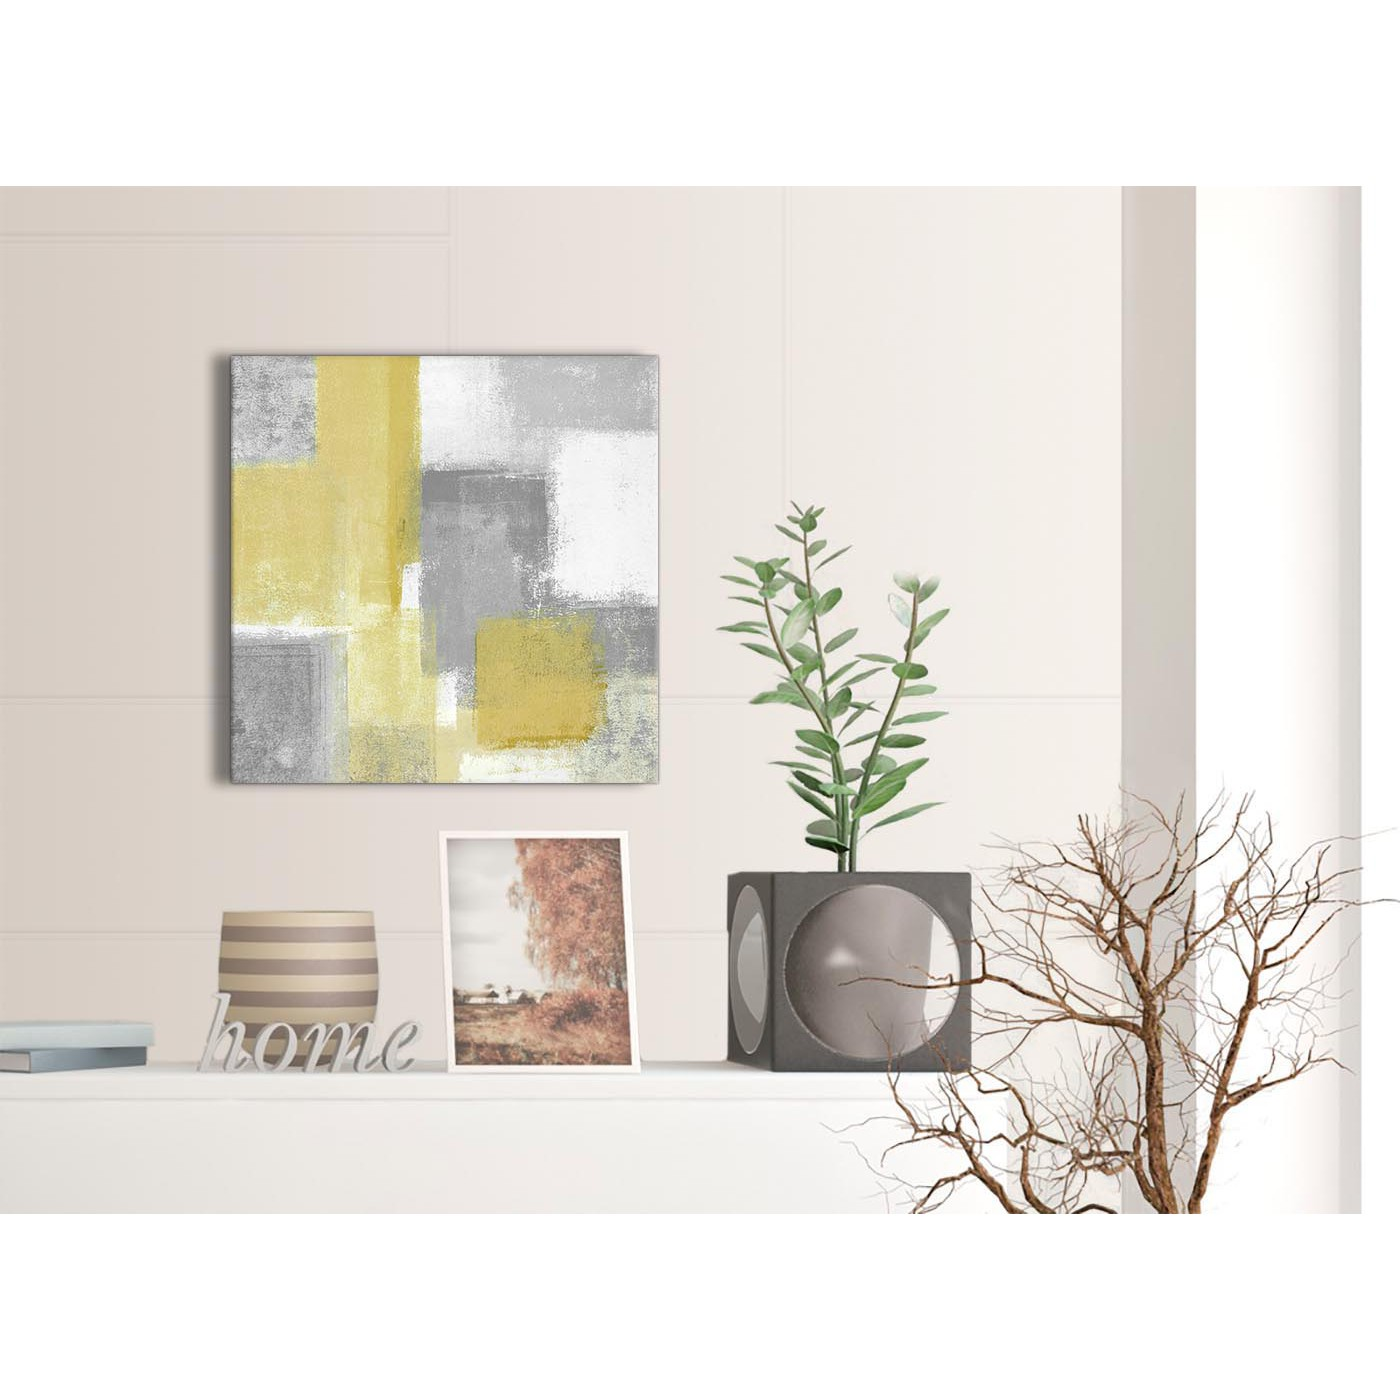 Mustard Yellow Grey Bathroom Canvas Pictures Accessories Abstract 1s367s 49cm Square Print